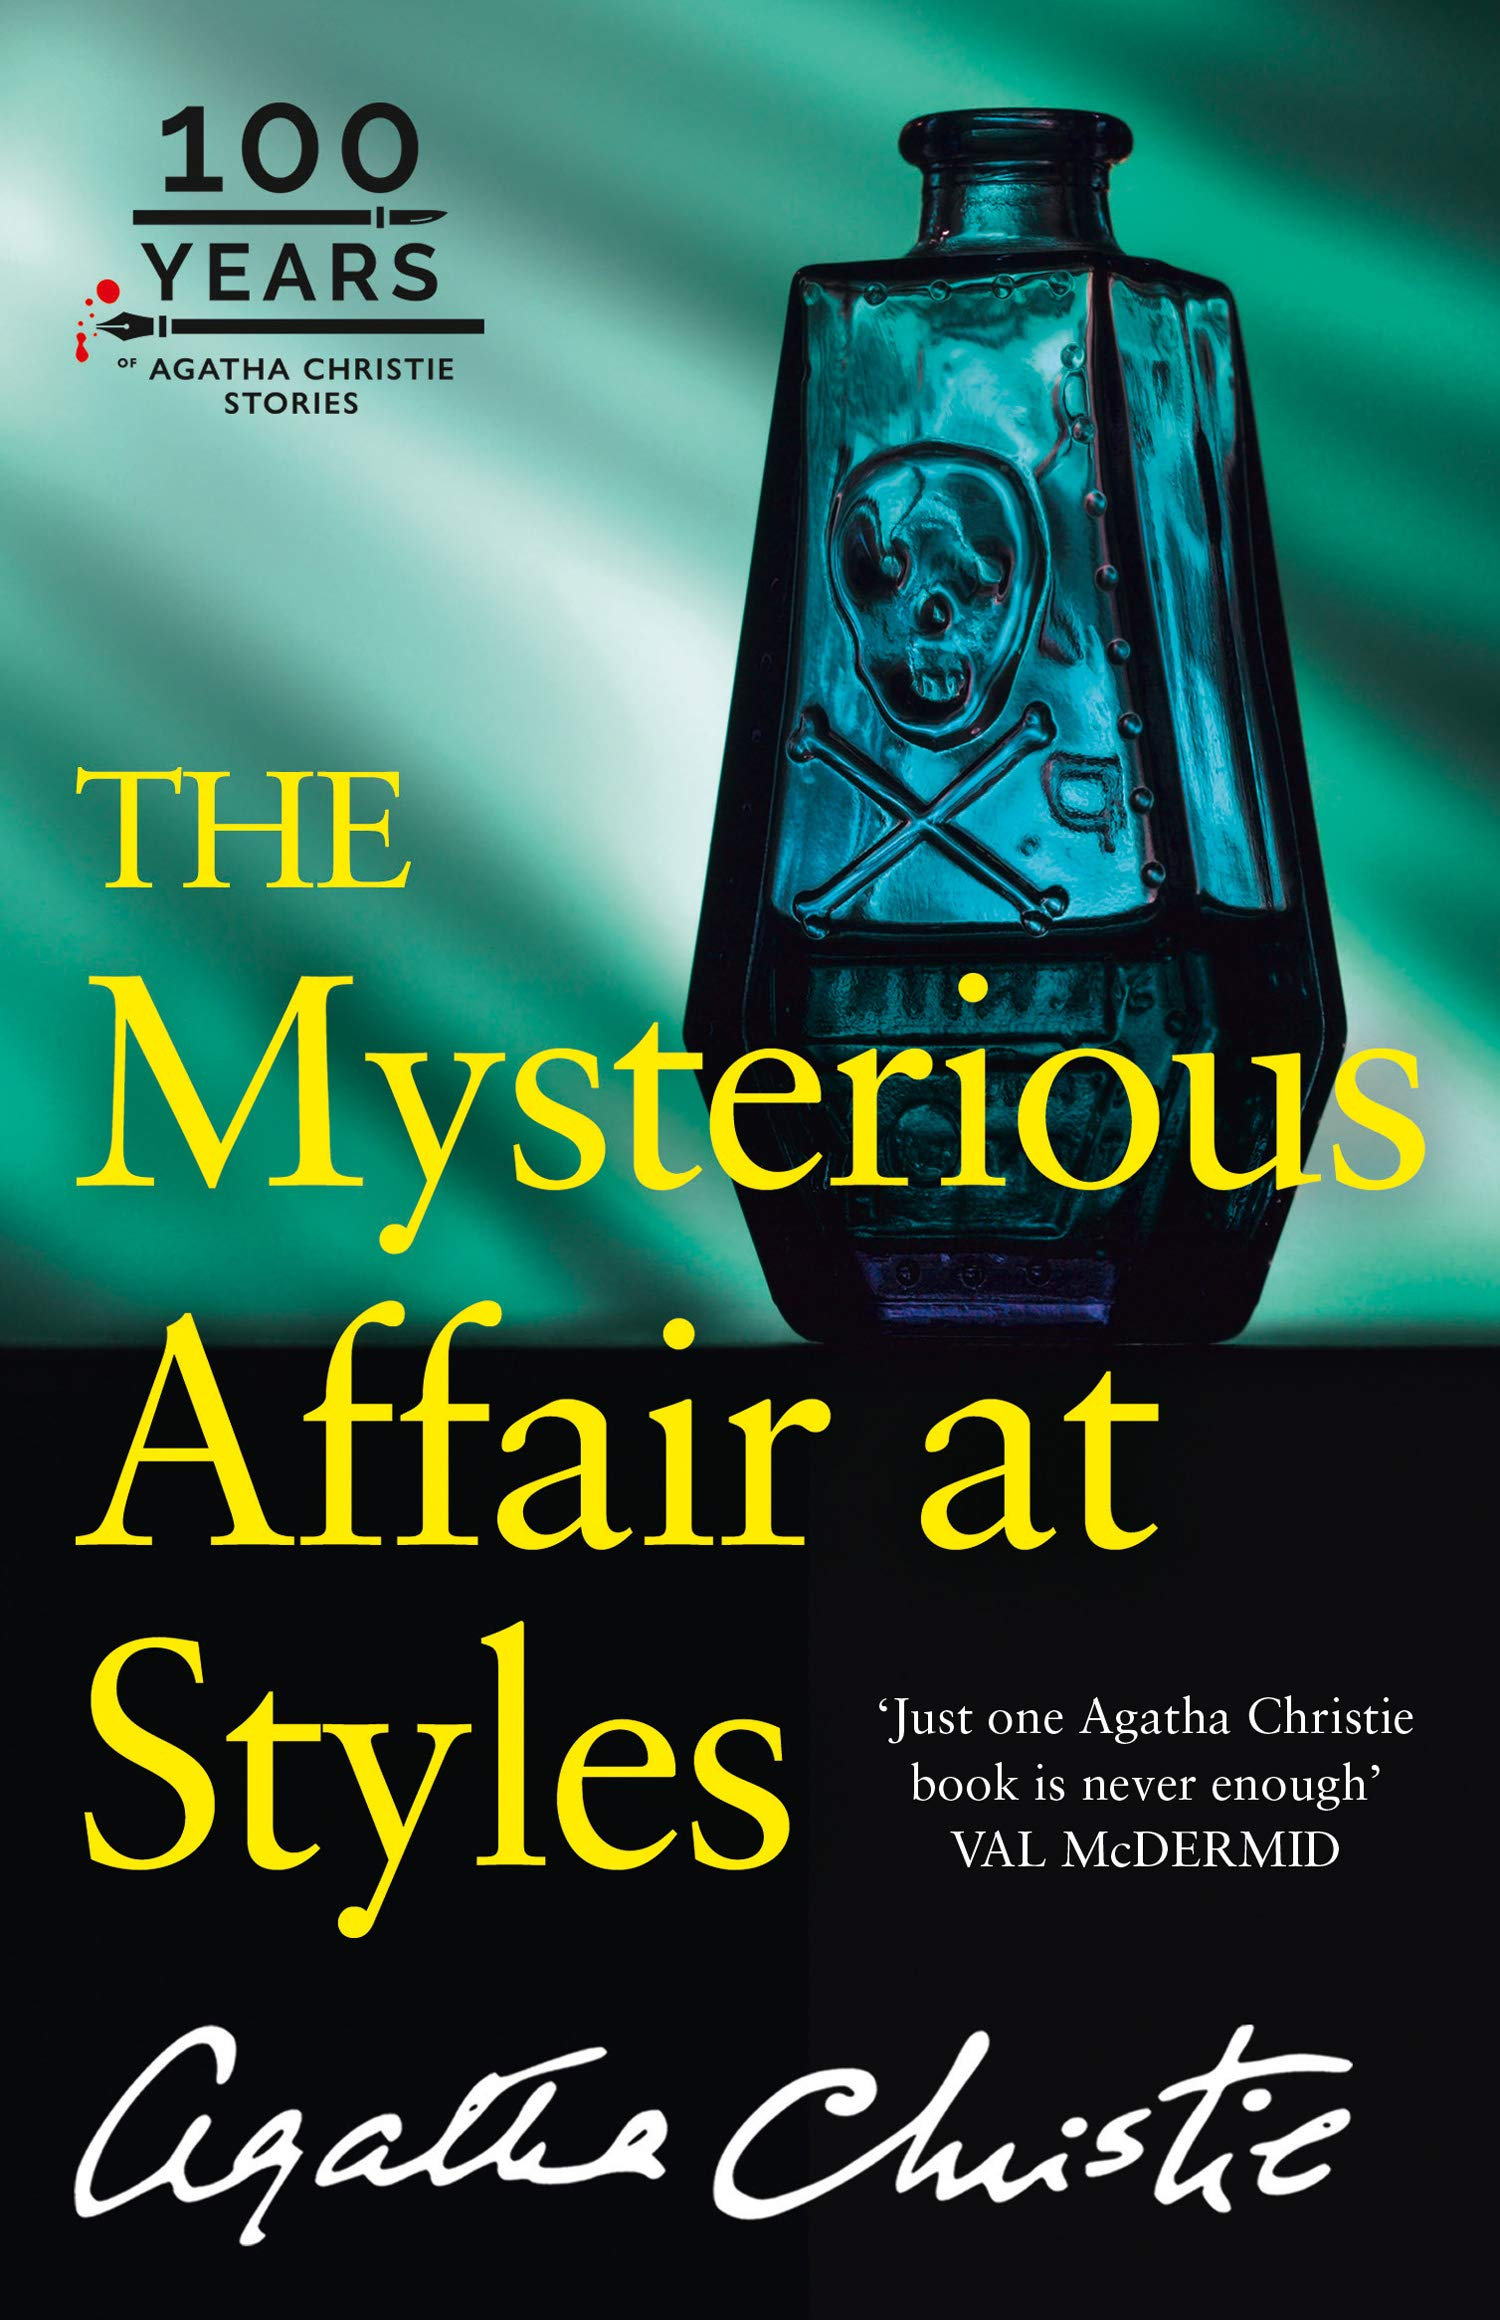 Cover: Agatha Christie The Mysterious Affair at Styles